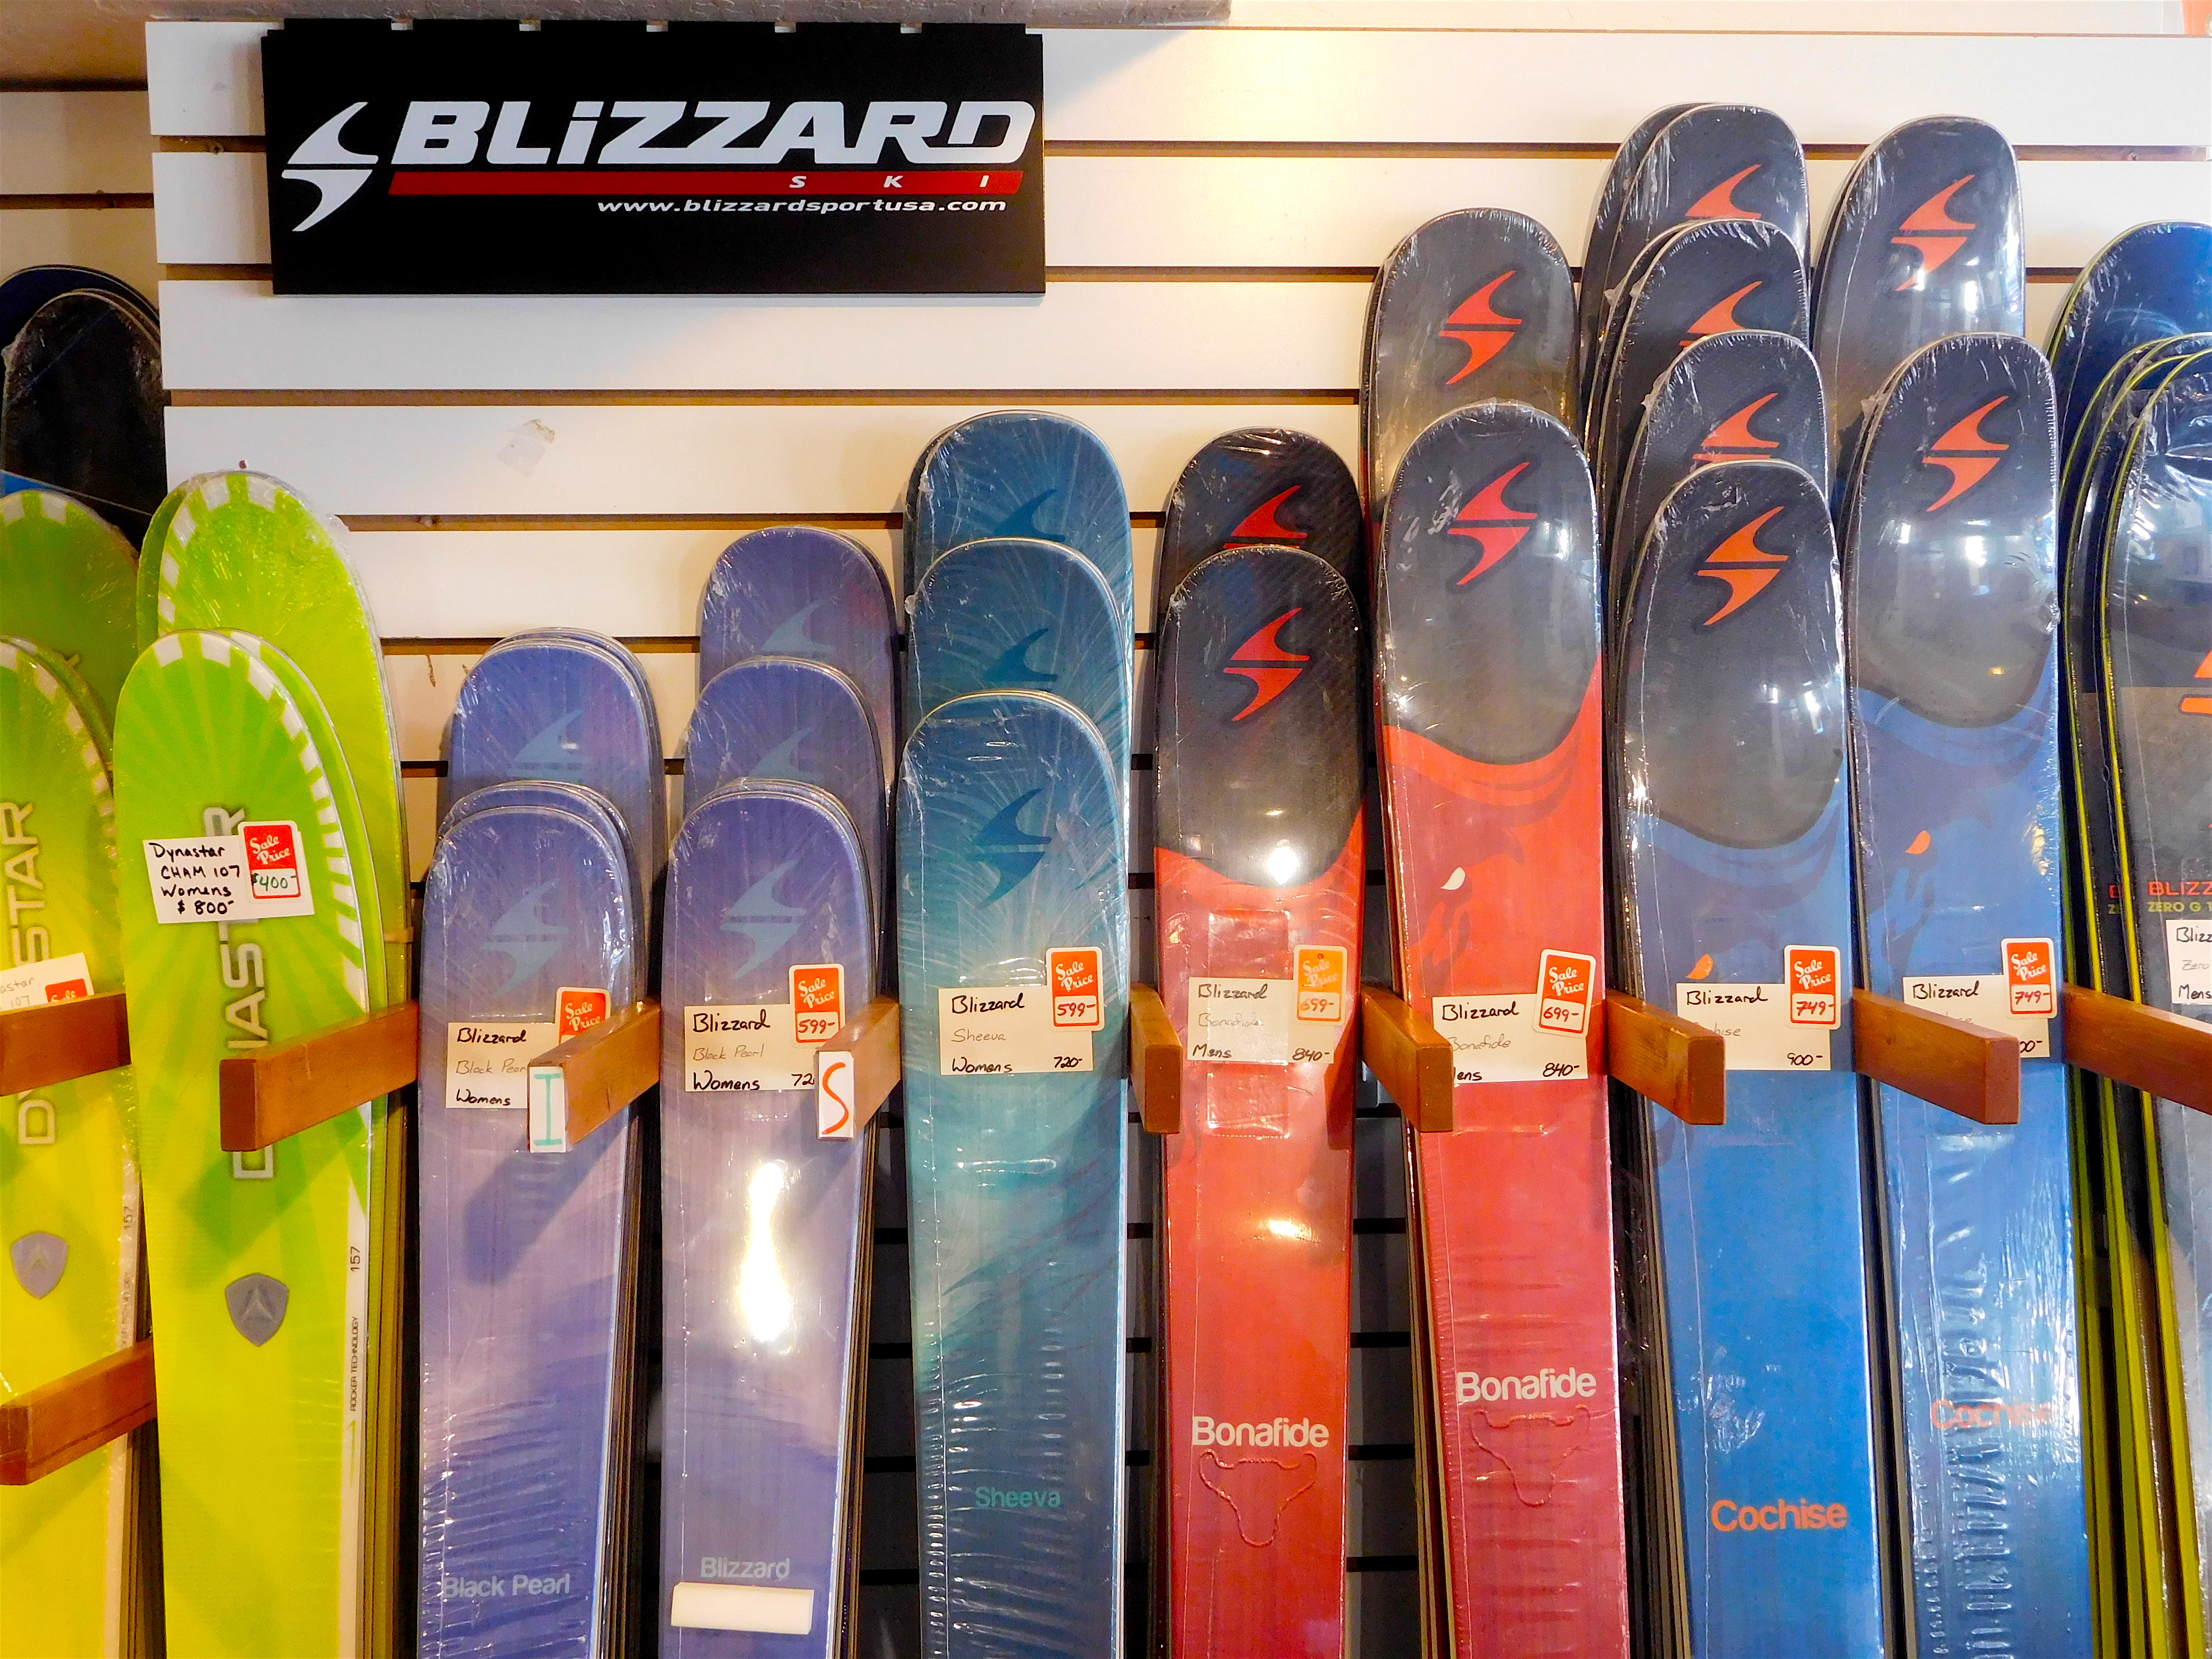 Blizzard skis for sale at Olympic.